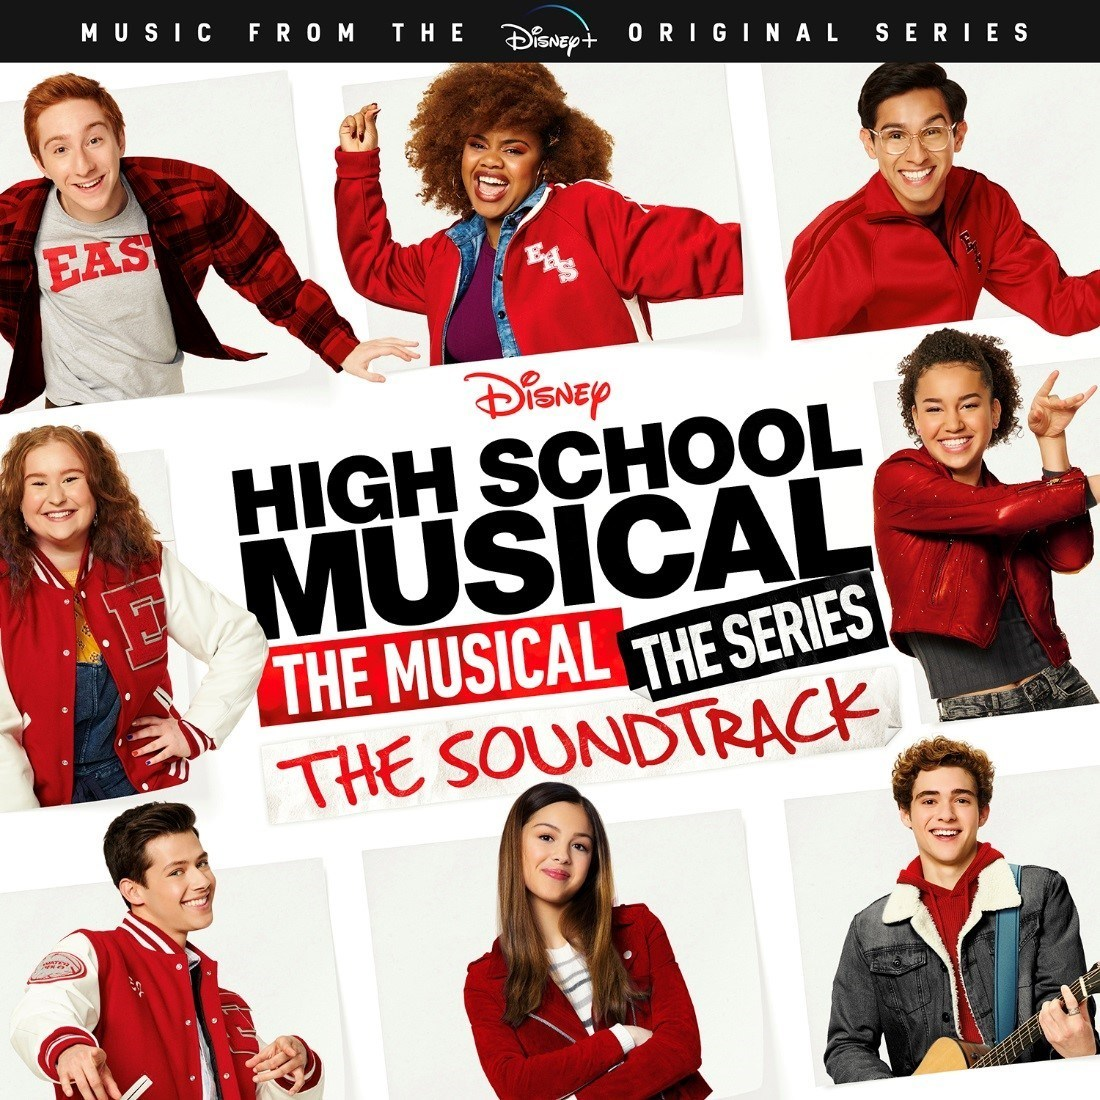 High School Musical The Musical The Series The Songs